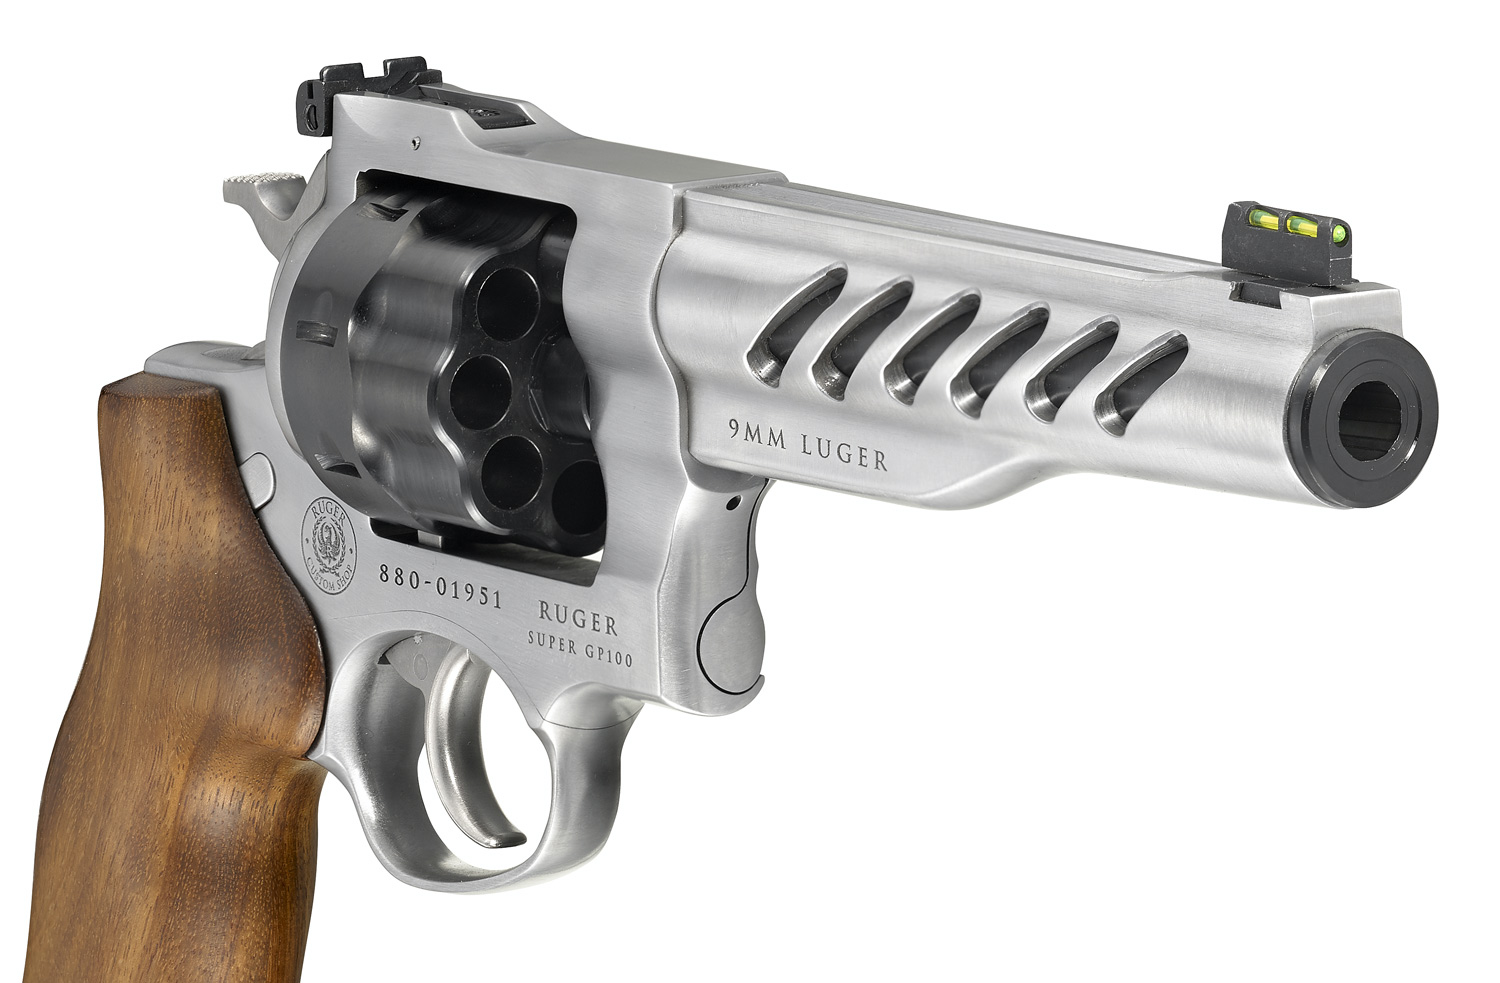 Ruger SUPER GP100 Custom Shop Competition Revolver Now Available in 9mm Luger (5)